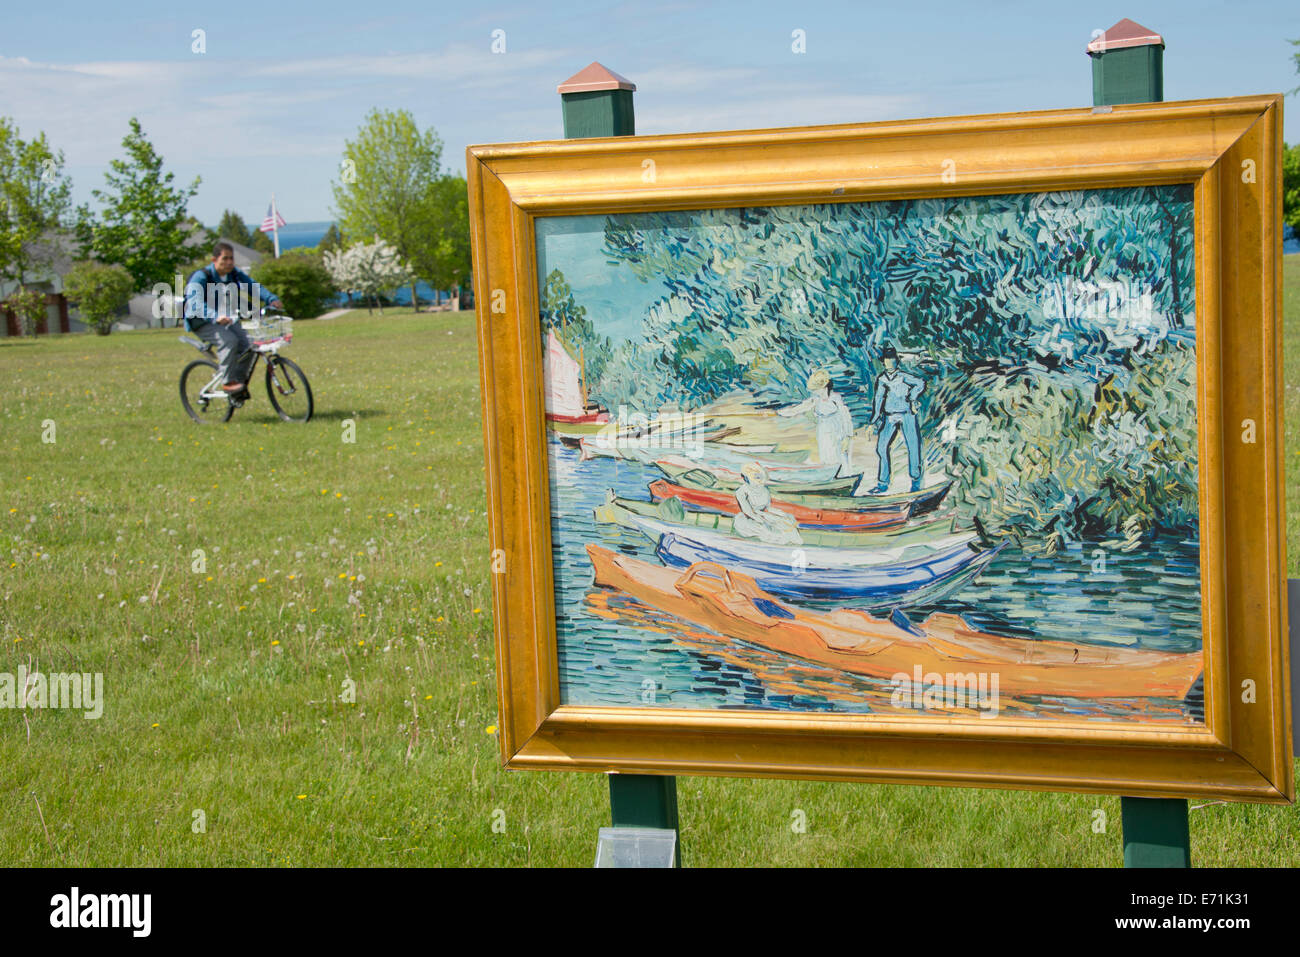 usa michigan mackinac island art in the park reproduction of